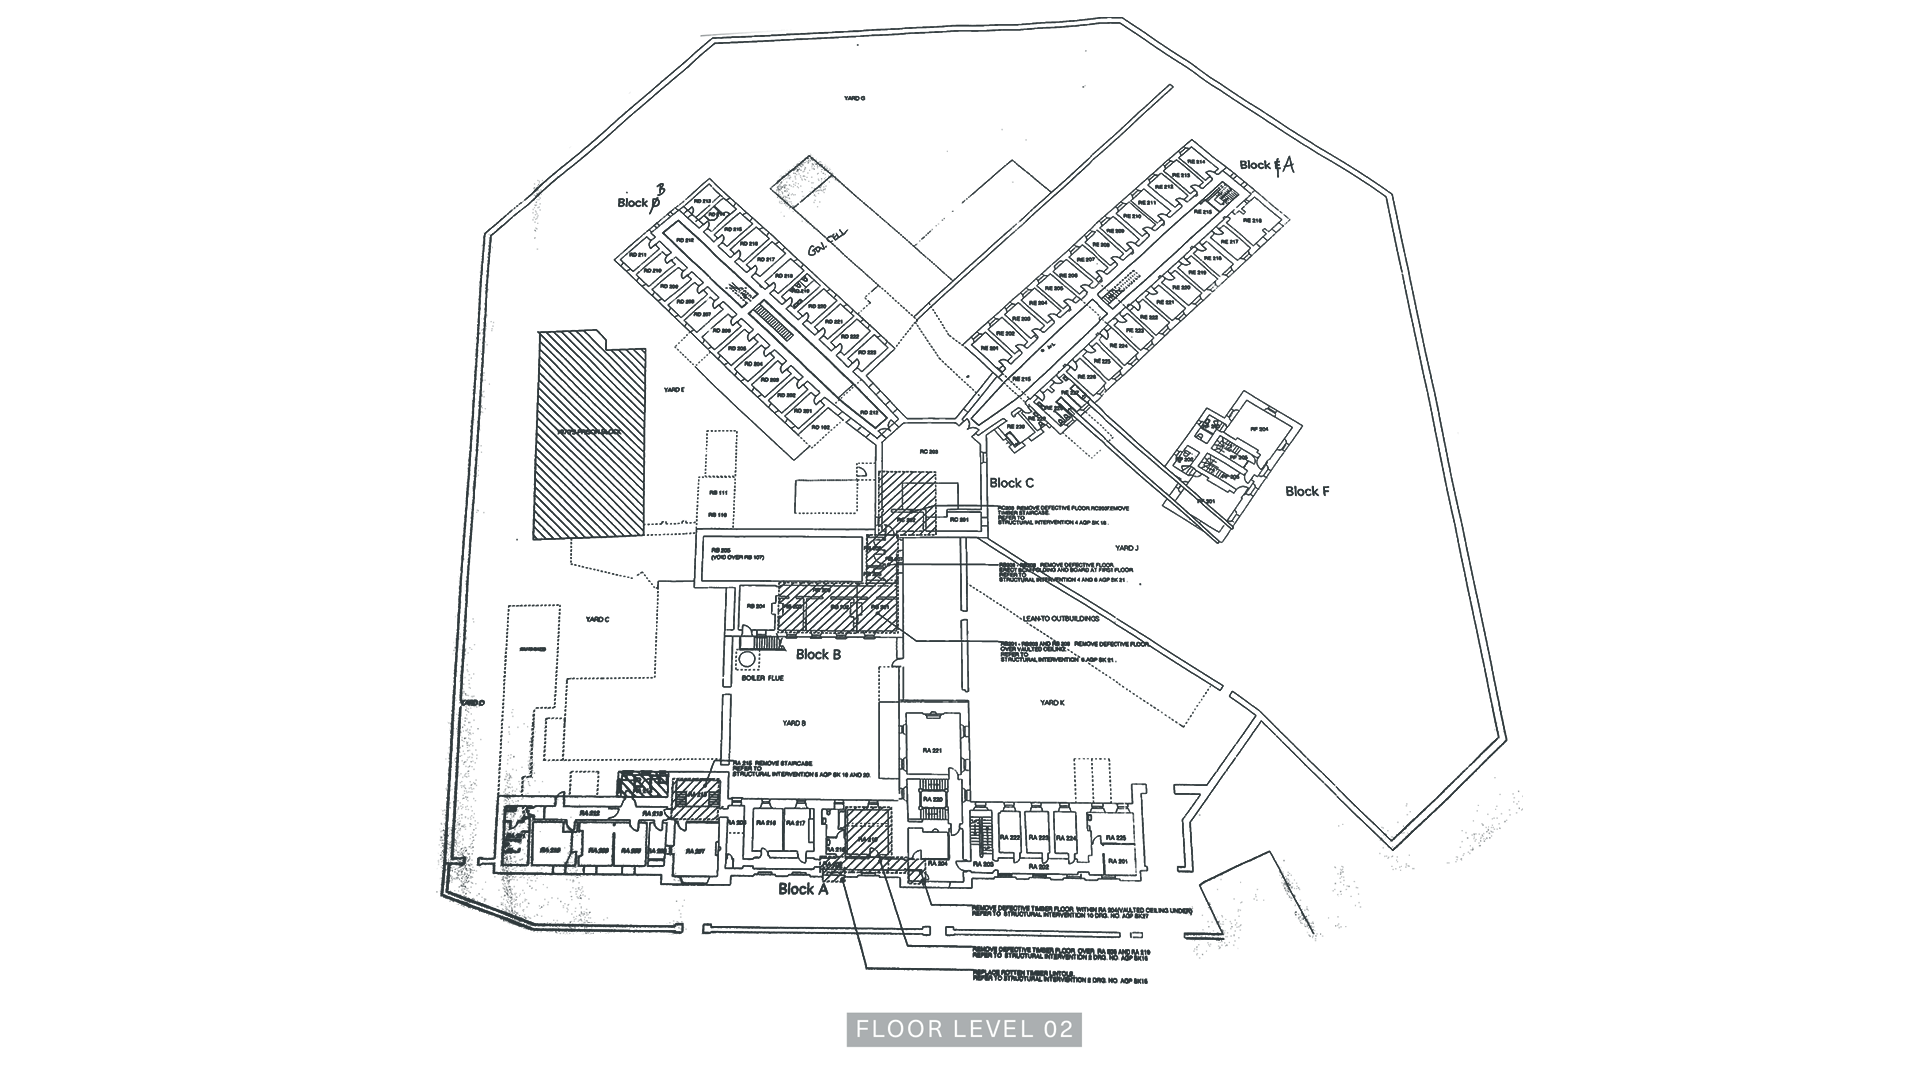 A Floor Plan of Level Two of the Armagh Gaol.